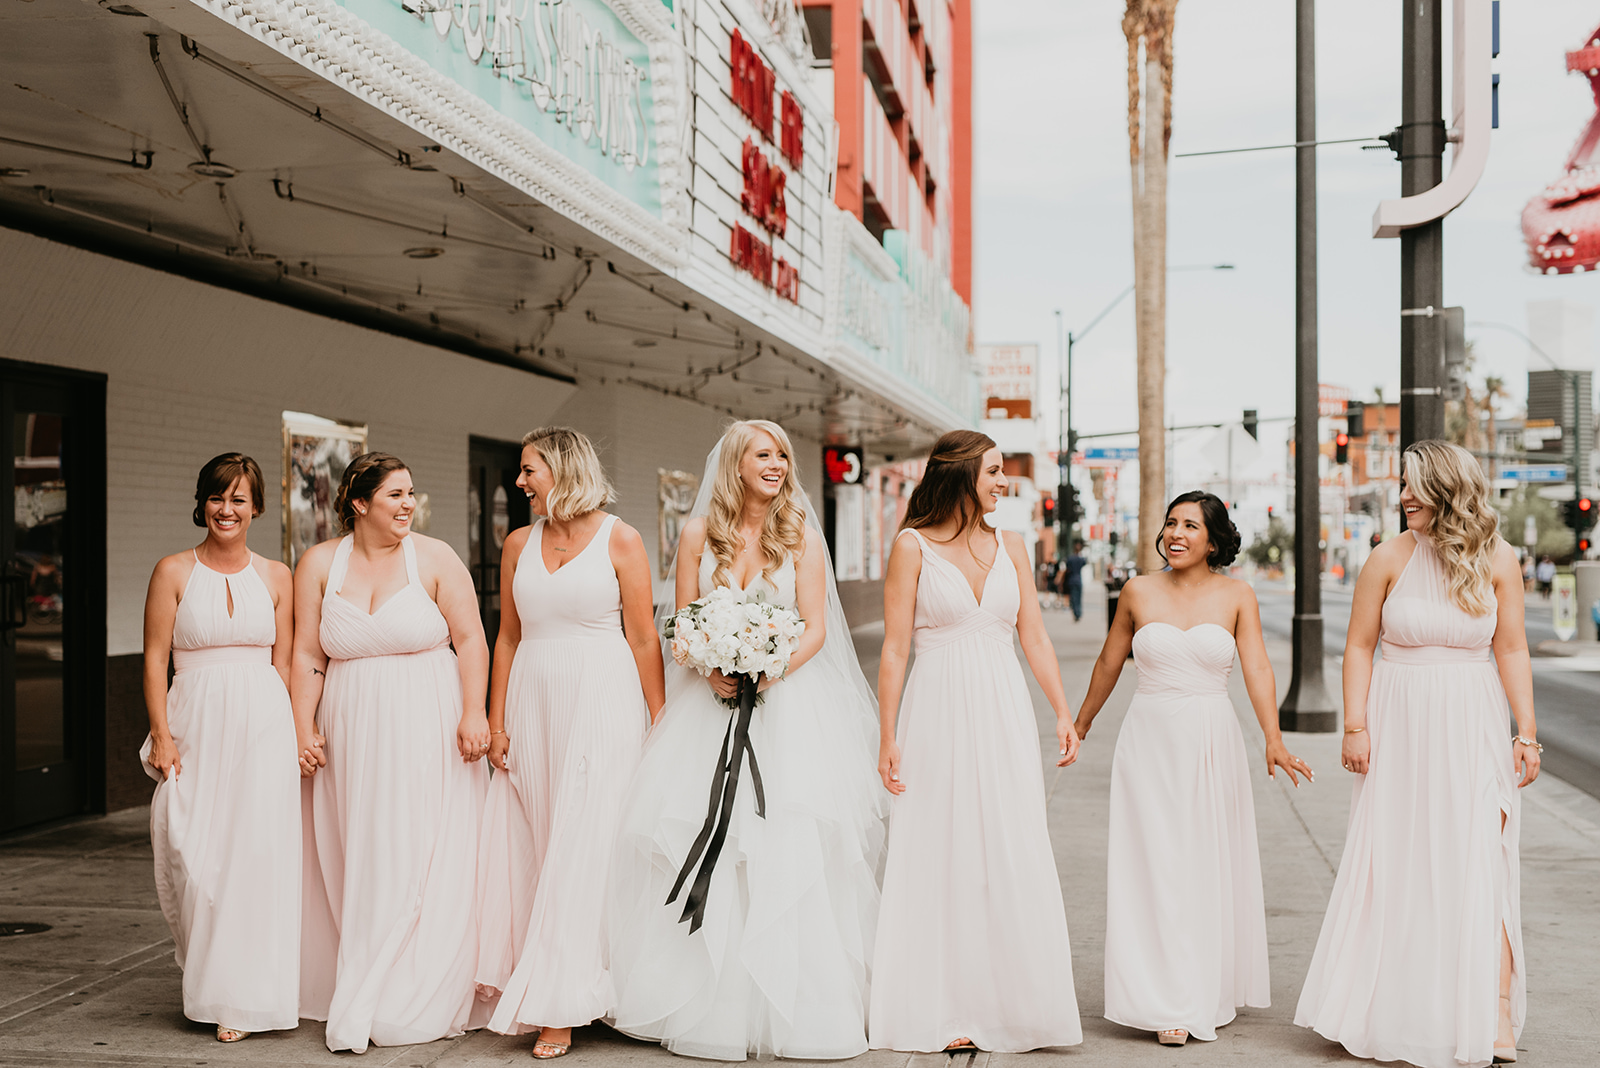 Fragoso Wedding in Las Vegas, NV - Bridal Party